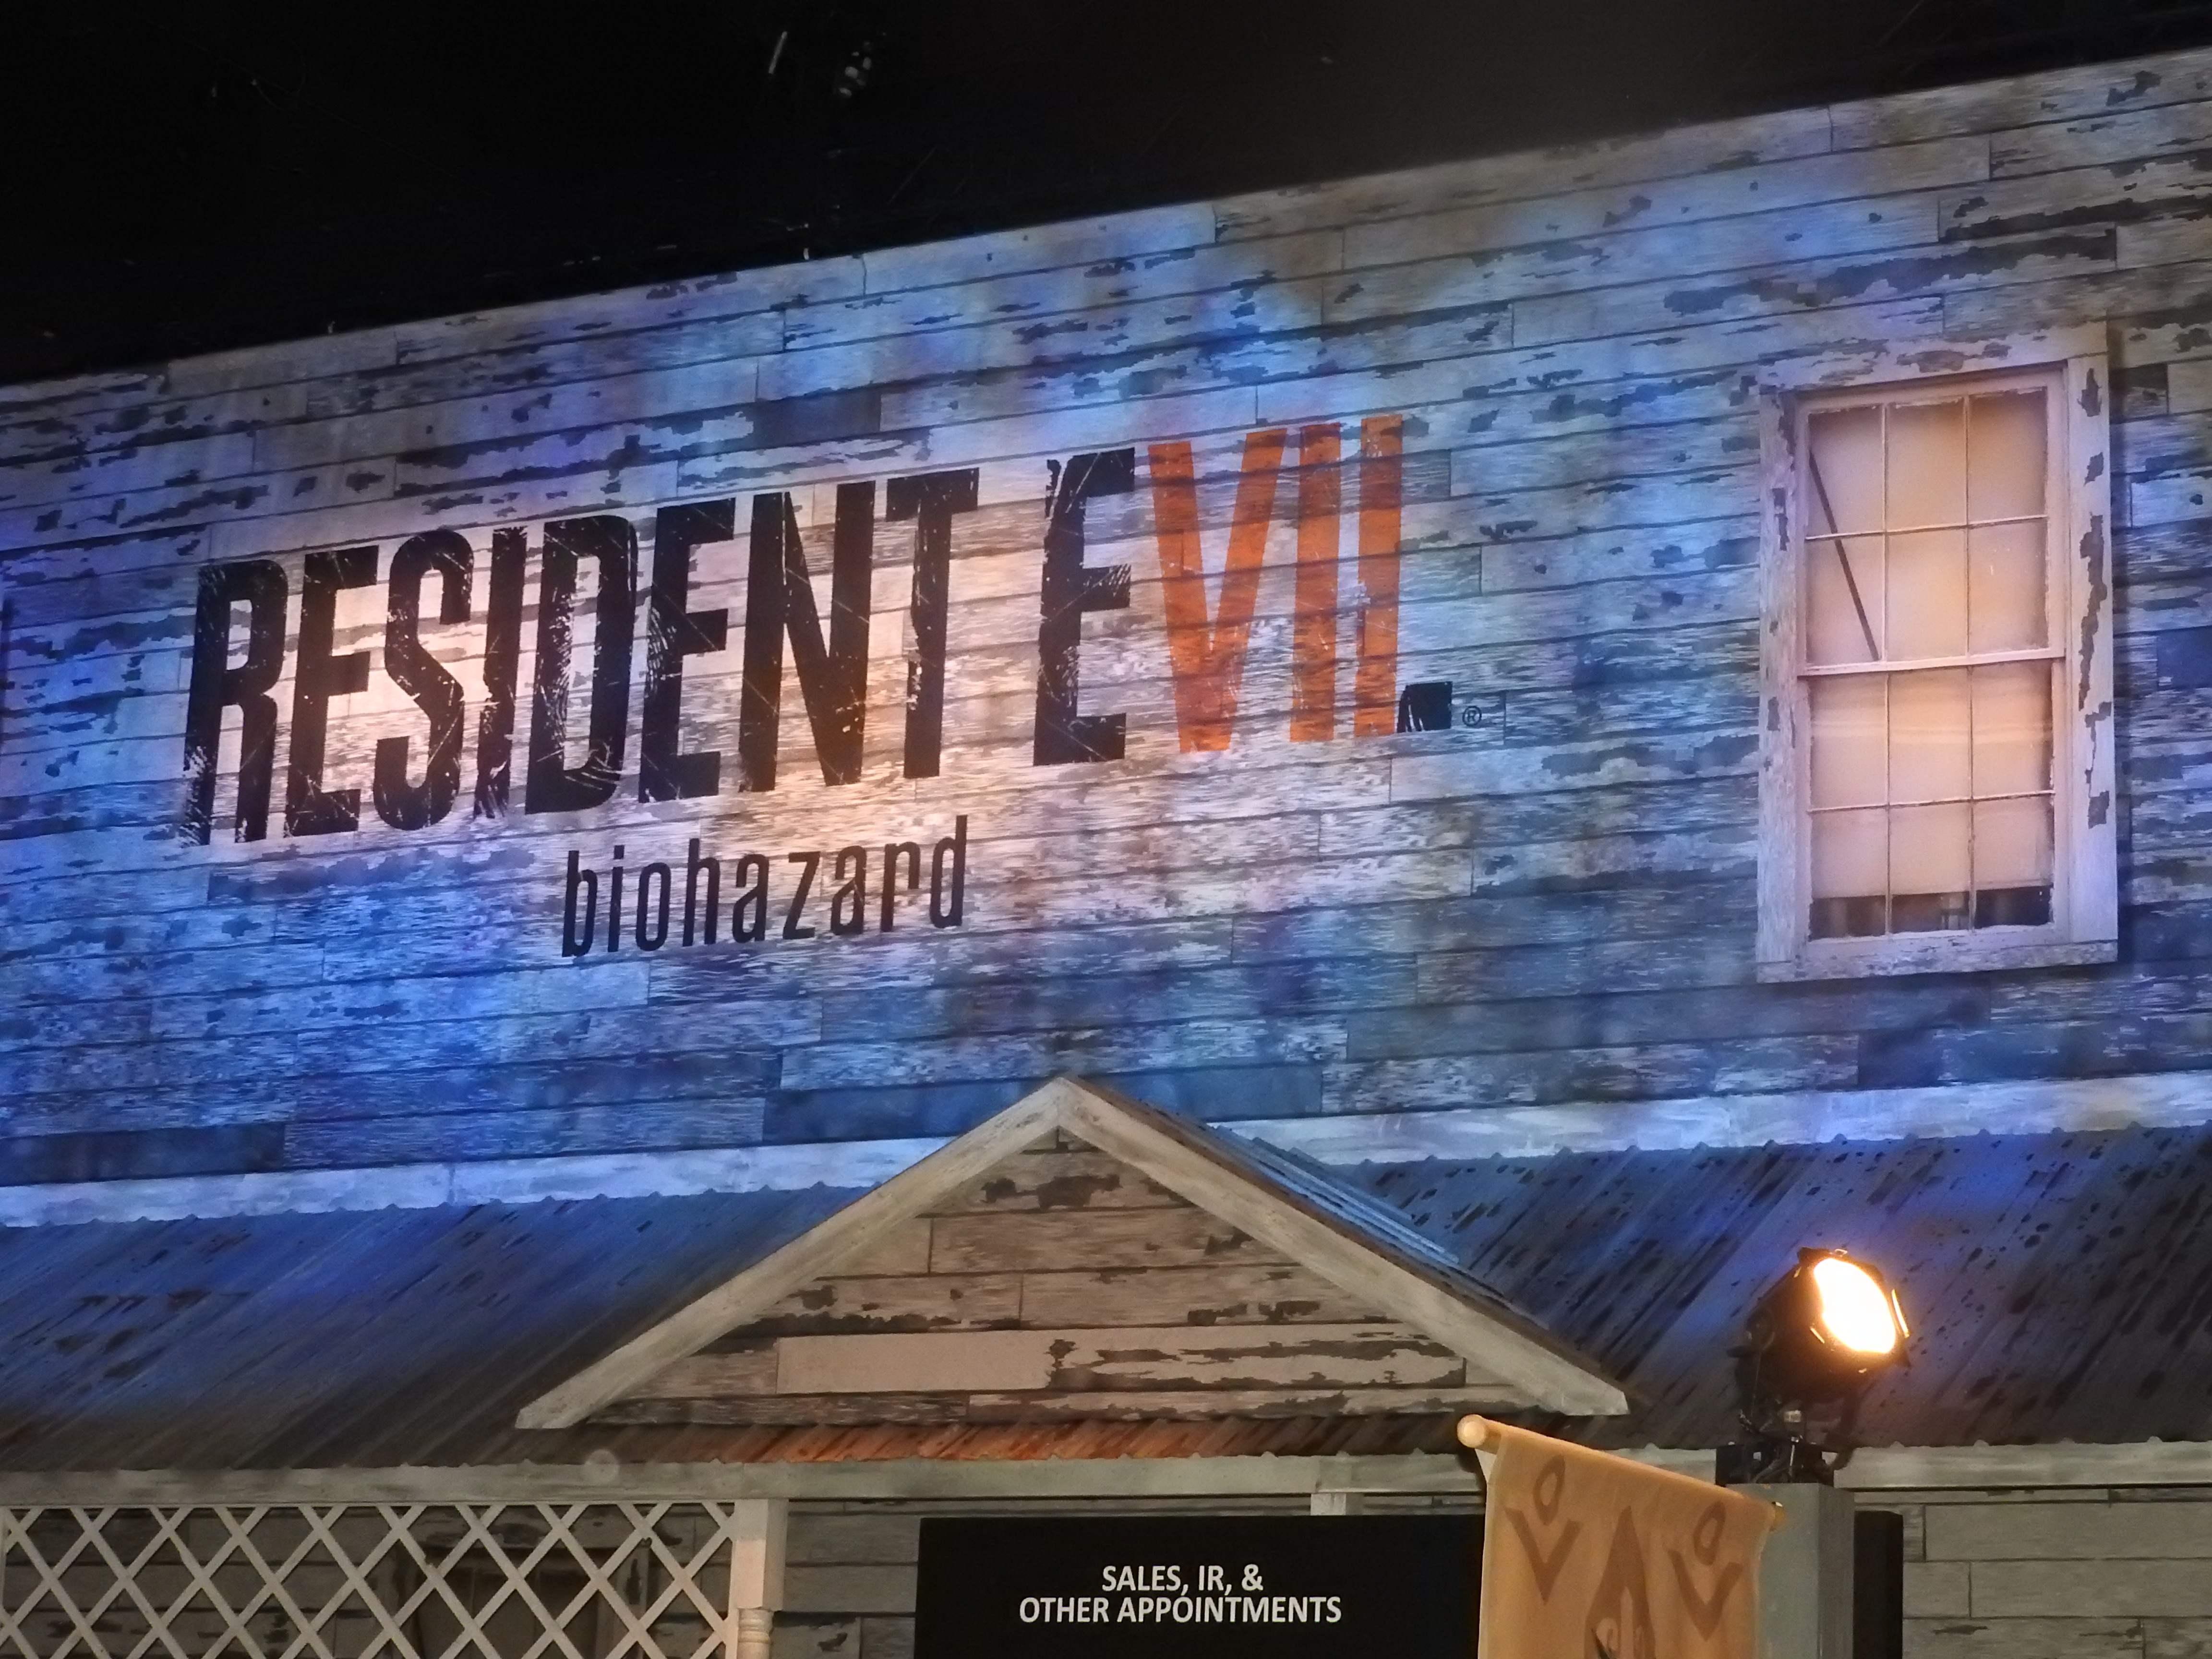 Capcom had Resident Evil Biohazard in VR.